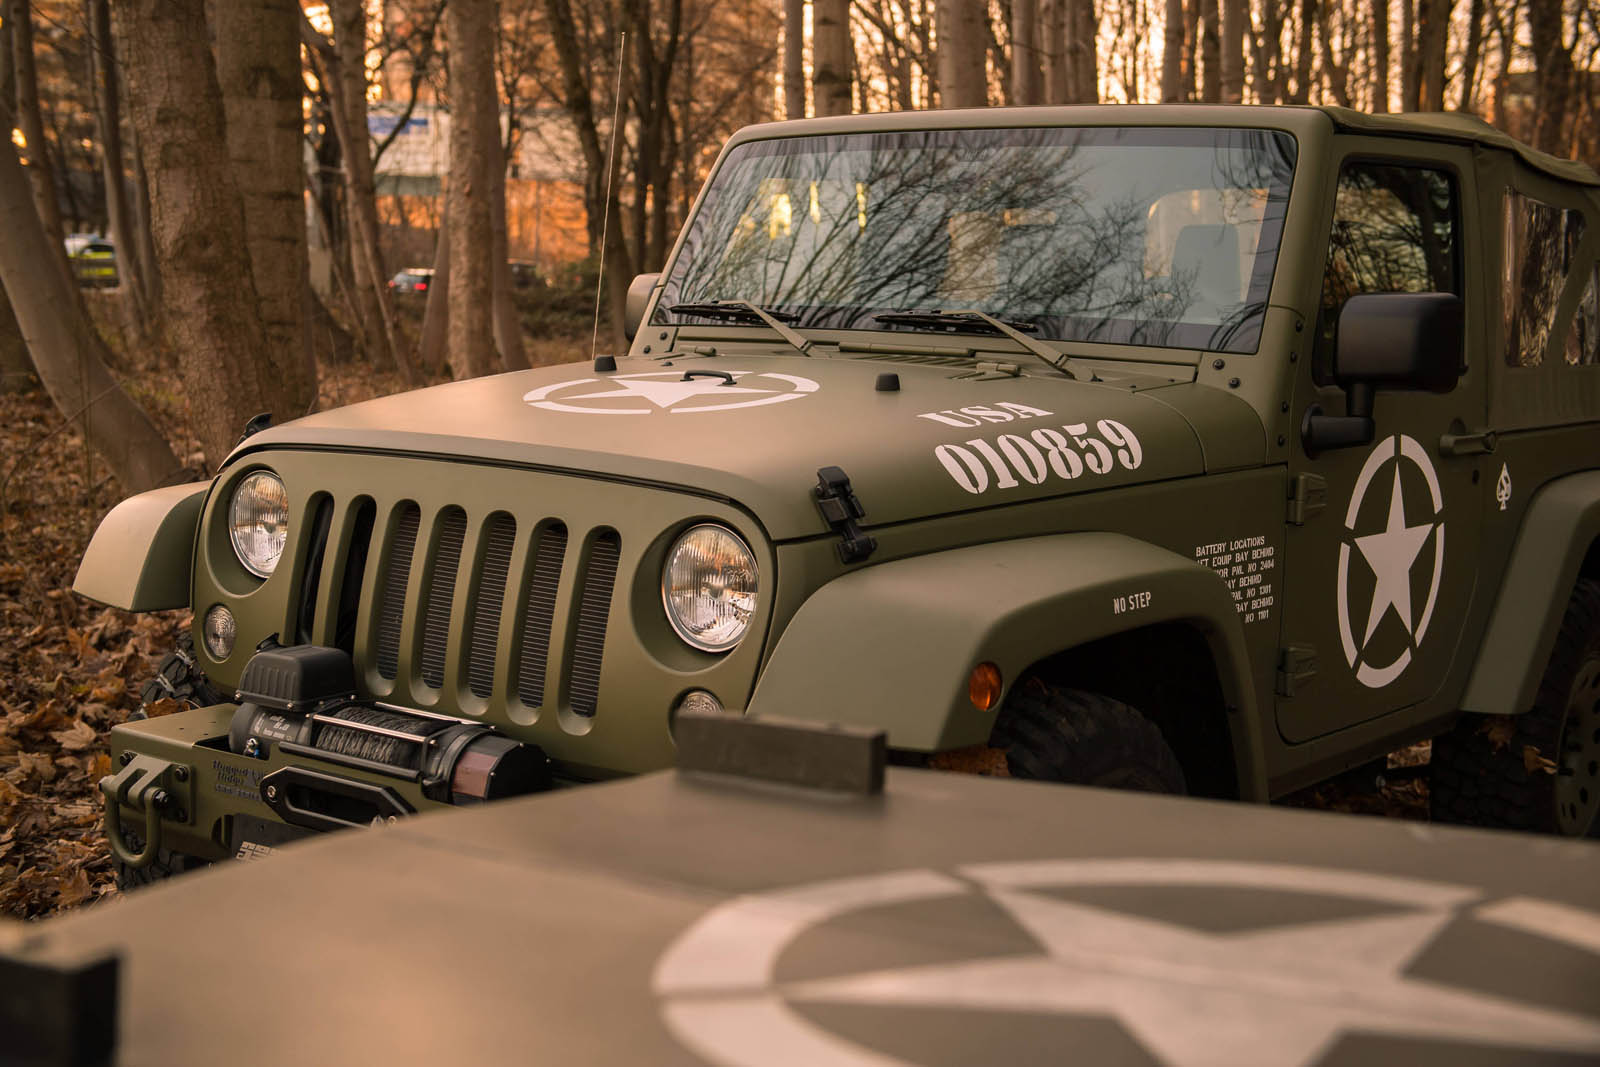 Jeep Wrangler Willys by Geiger Cars (18)